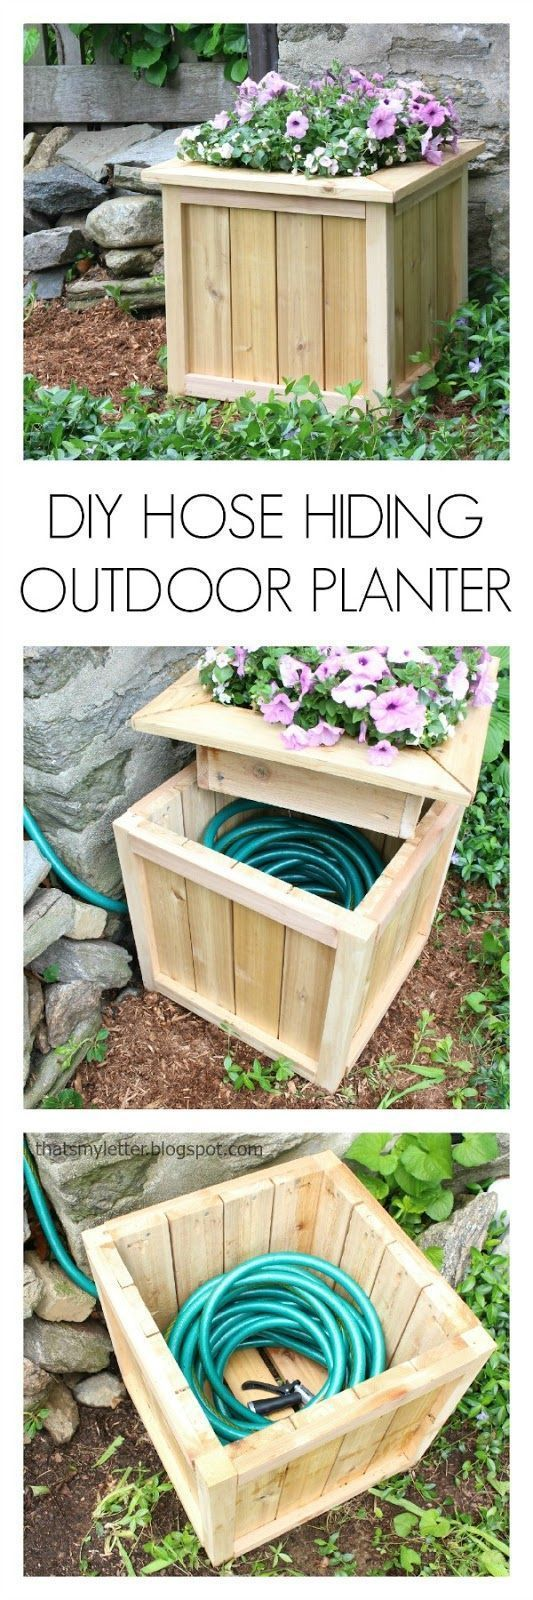 Everything Plants and Flowers: Easy DIY Backyard Projects with Lots of Tutorials ...